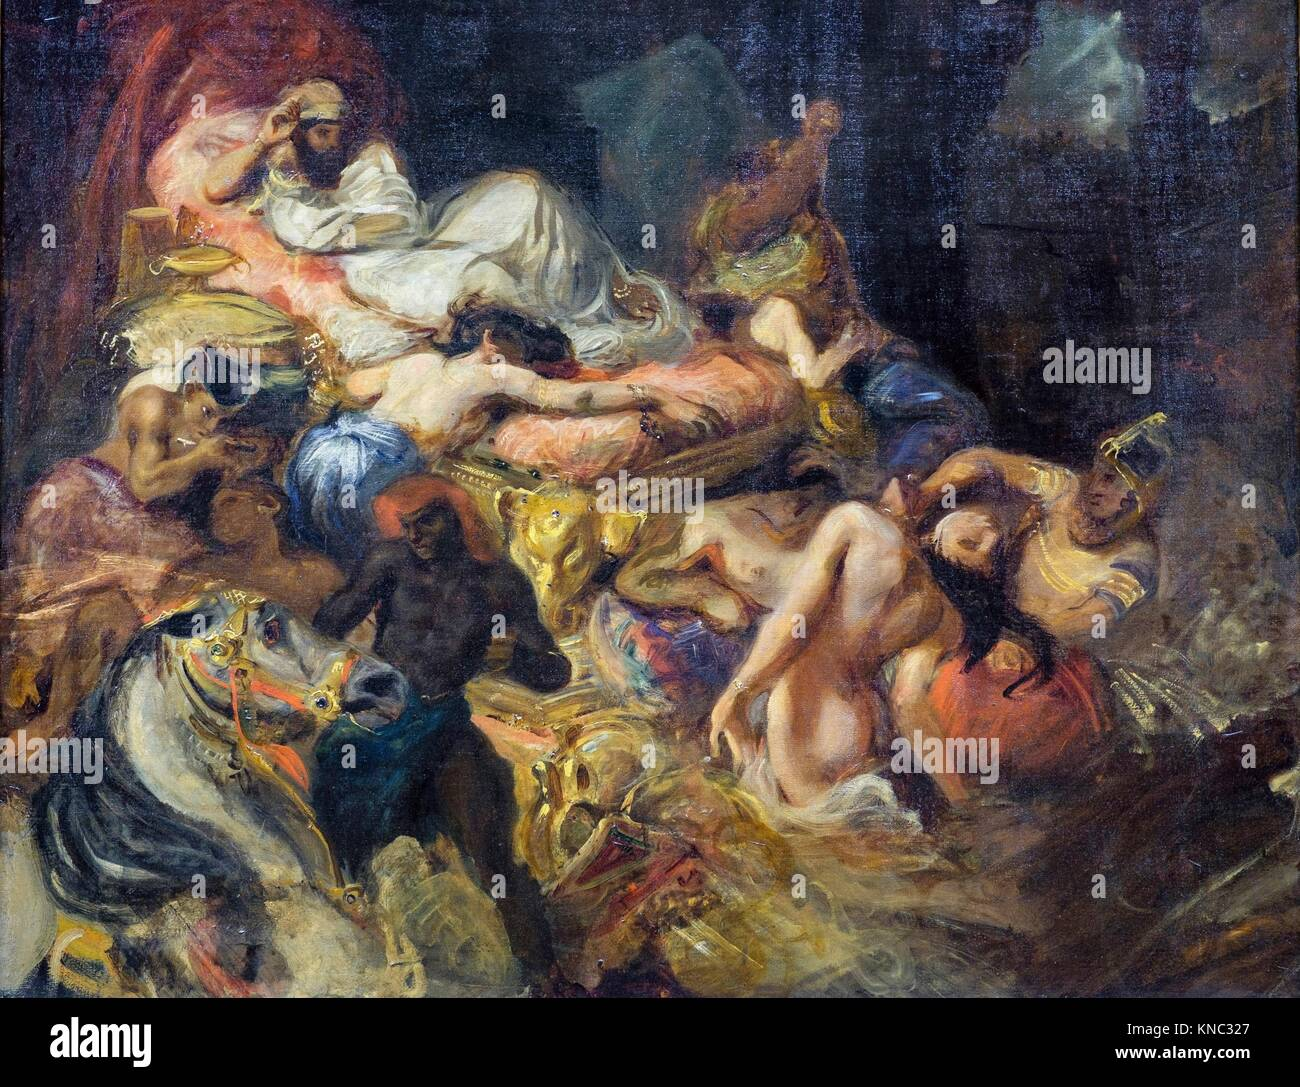 delacroix death of sardanapalus